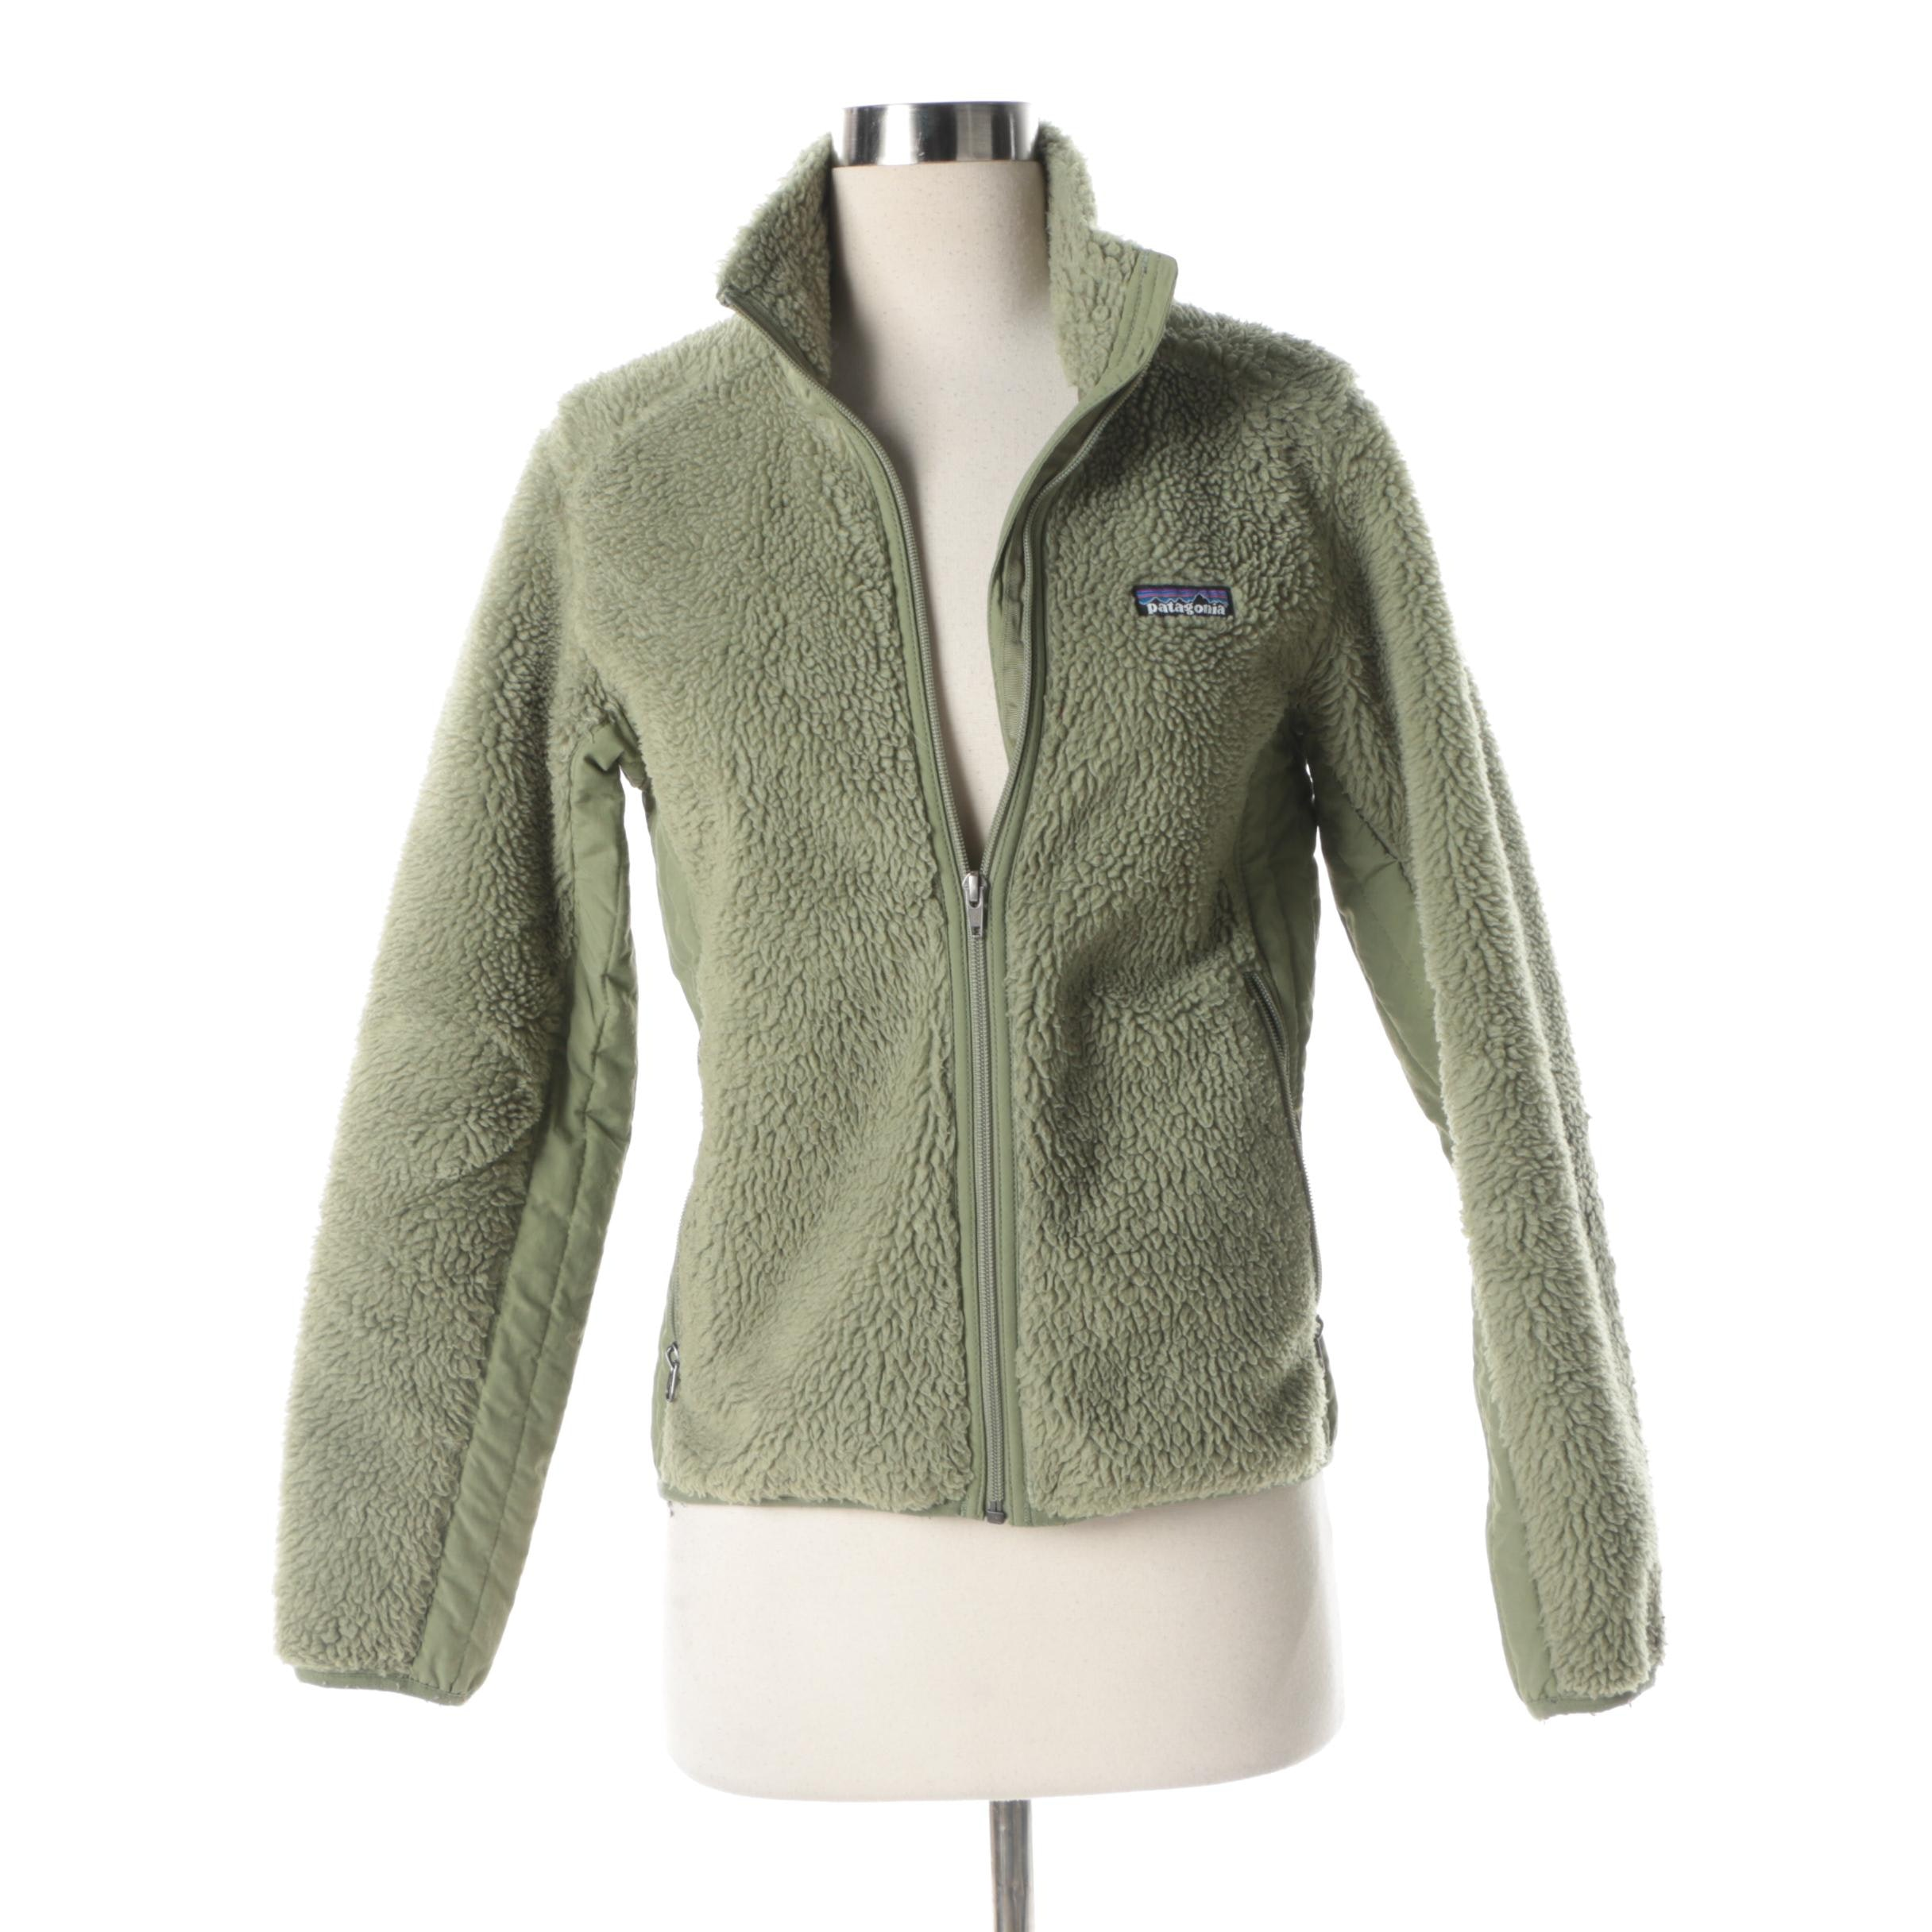 Women's Patagonia Green Polar Fleece Jacket